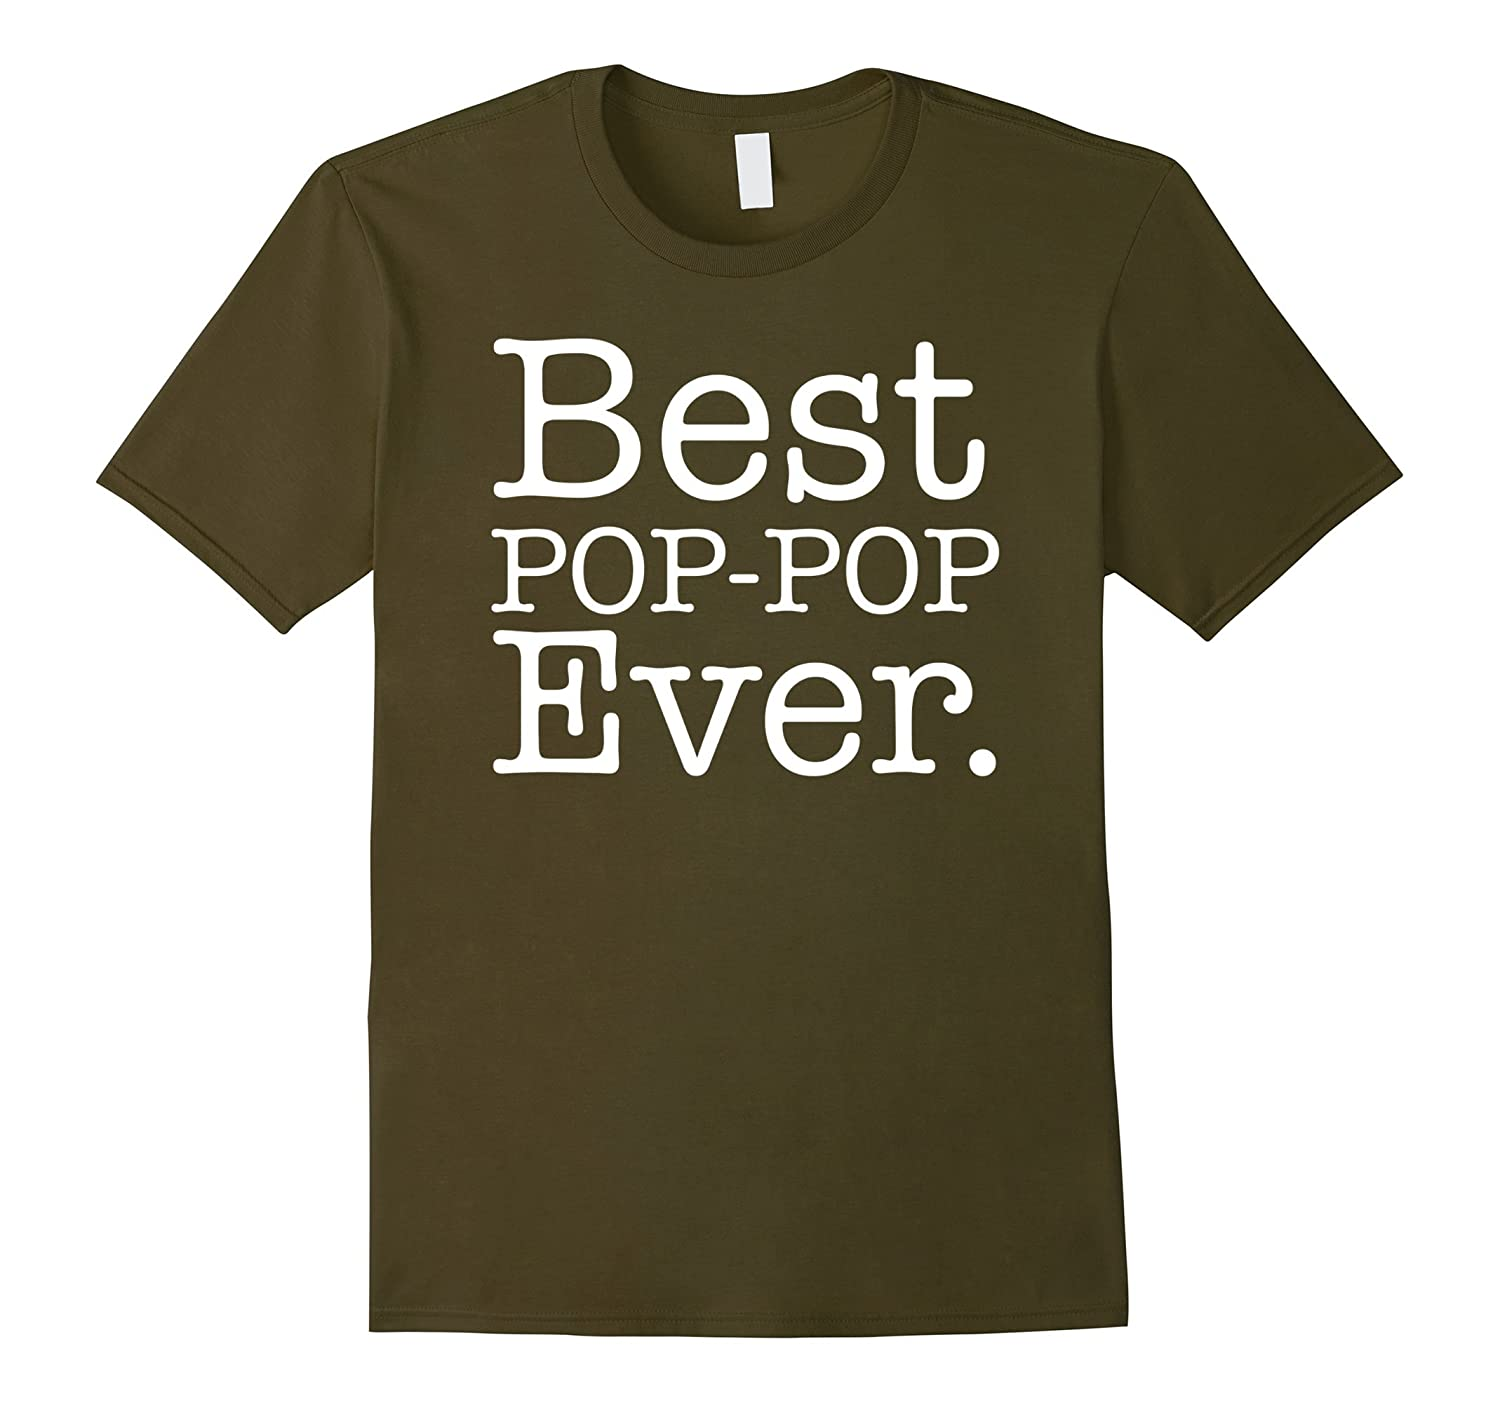 Mens Best POP POP Ever Shirt Funny Grandpa Shirts for Fathers Day-Vaci